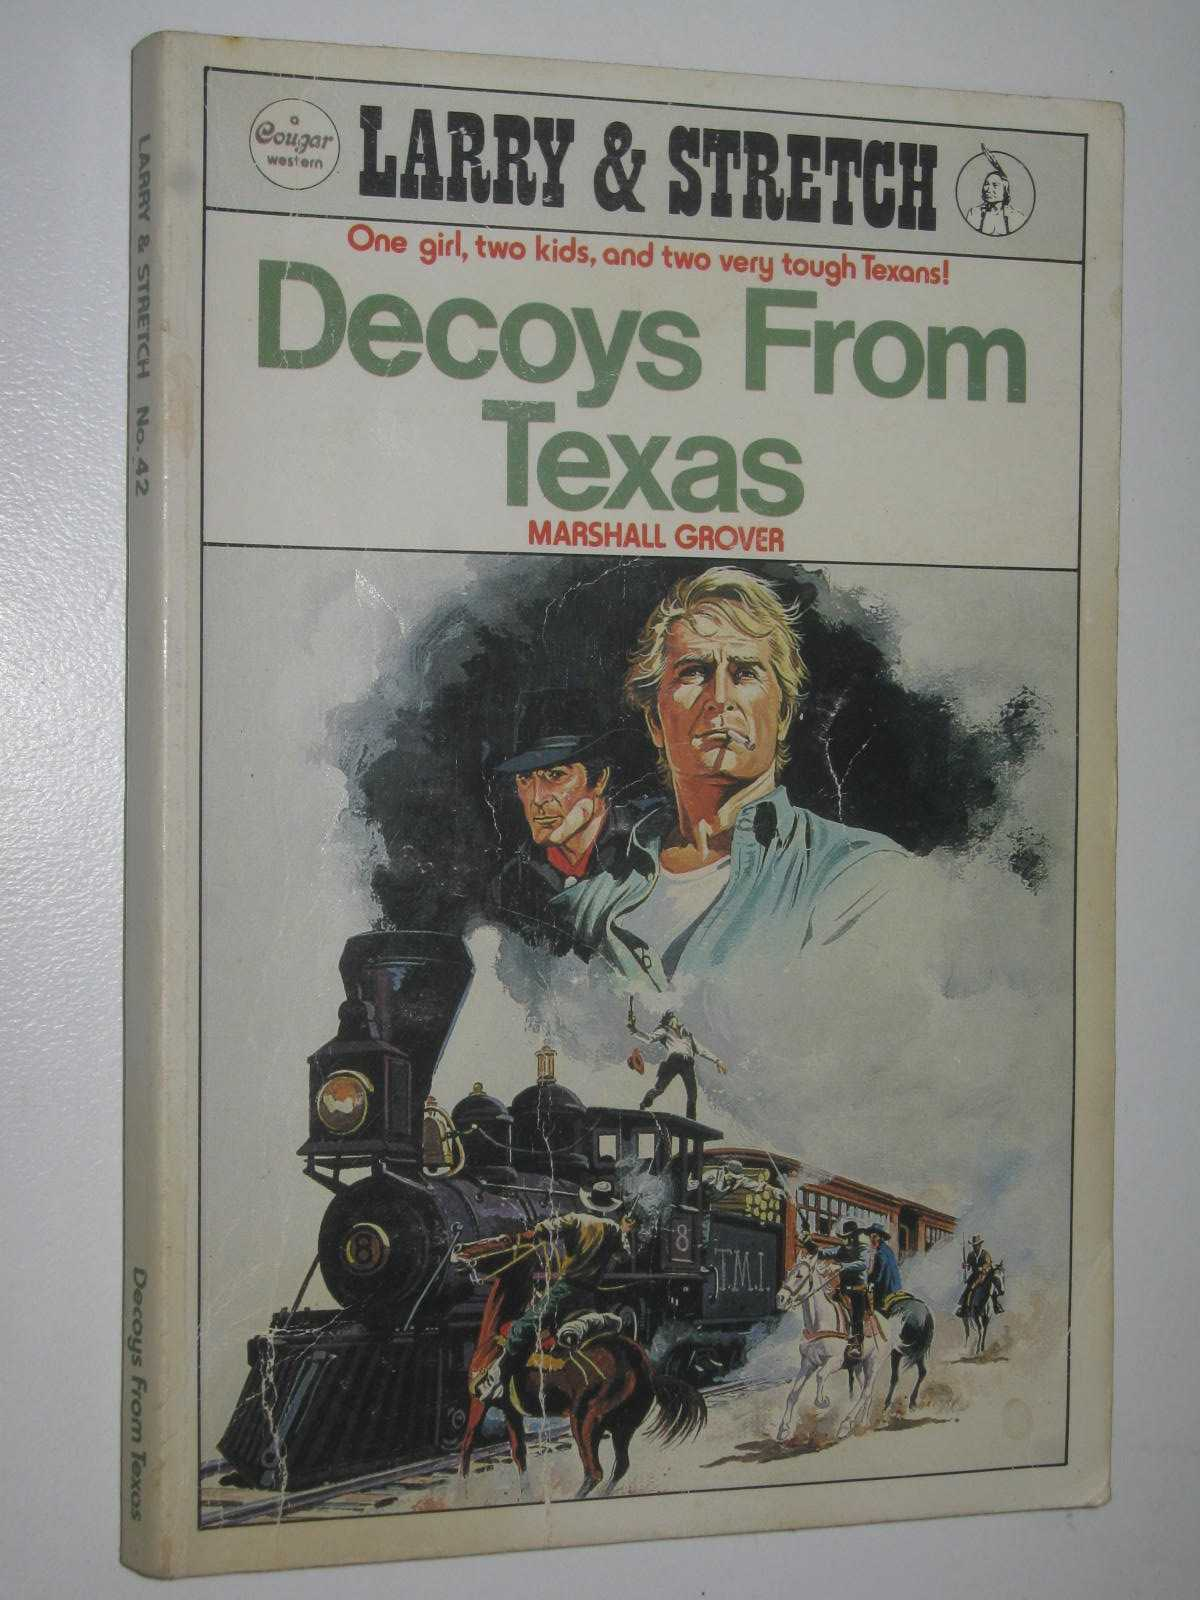 Image for Decoys from Texas - Larry and Stretch [Cougar Western] Series #42